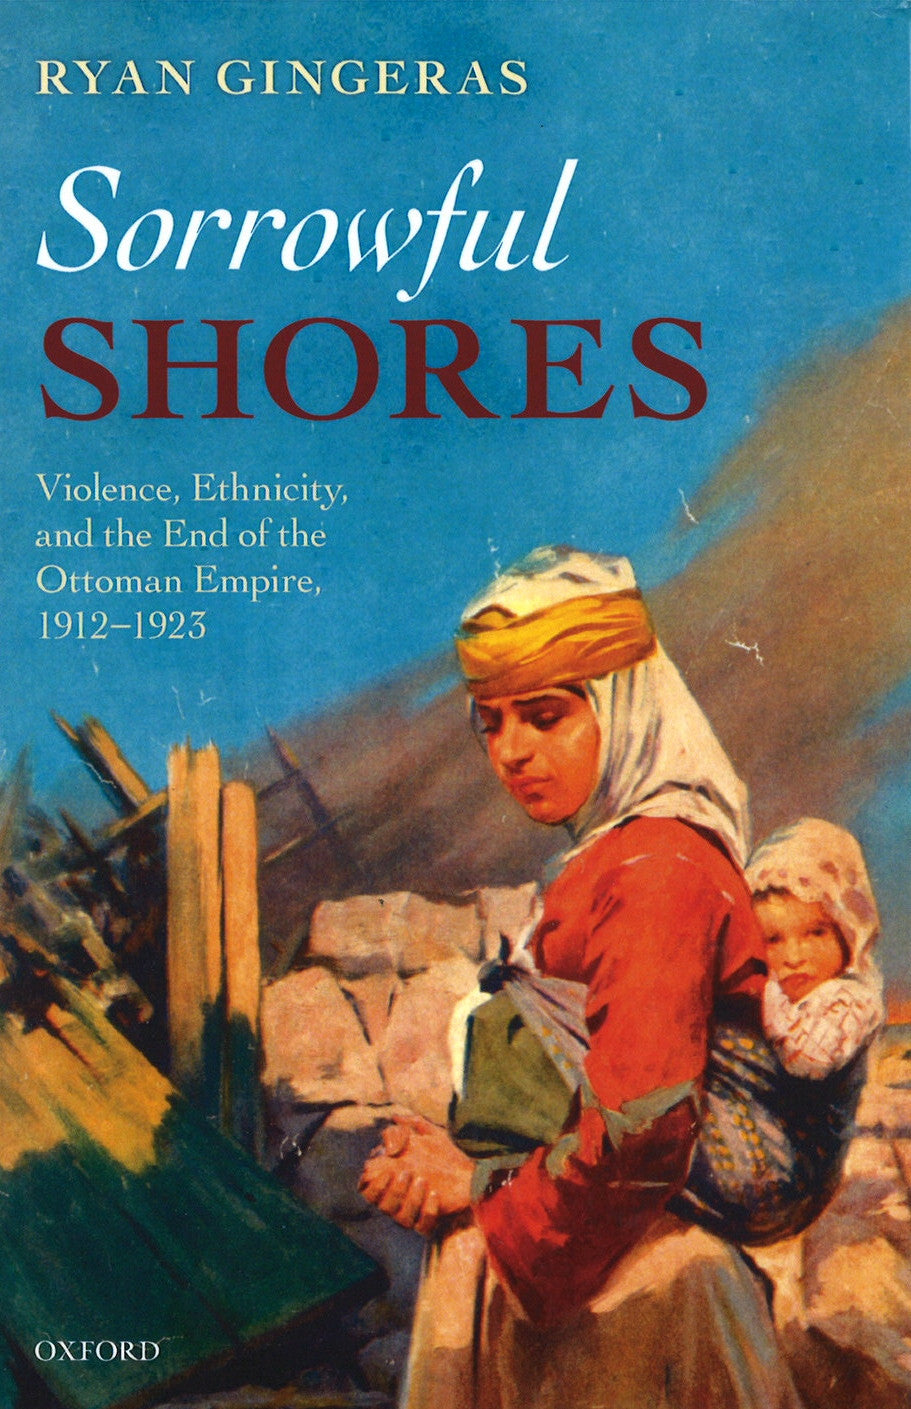 SORROWFUL SHORES: Violence, Ethnicity, and the End of the Ottoman Empire, 1912-1923